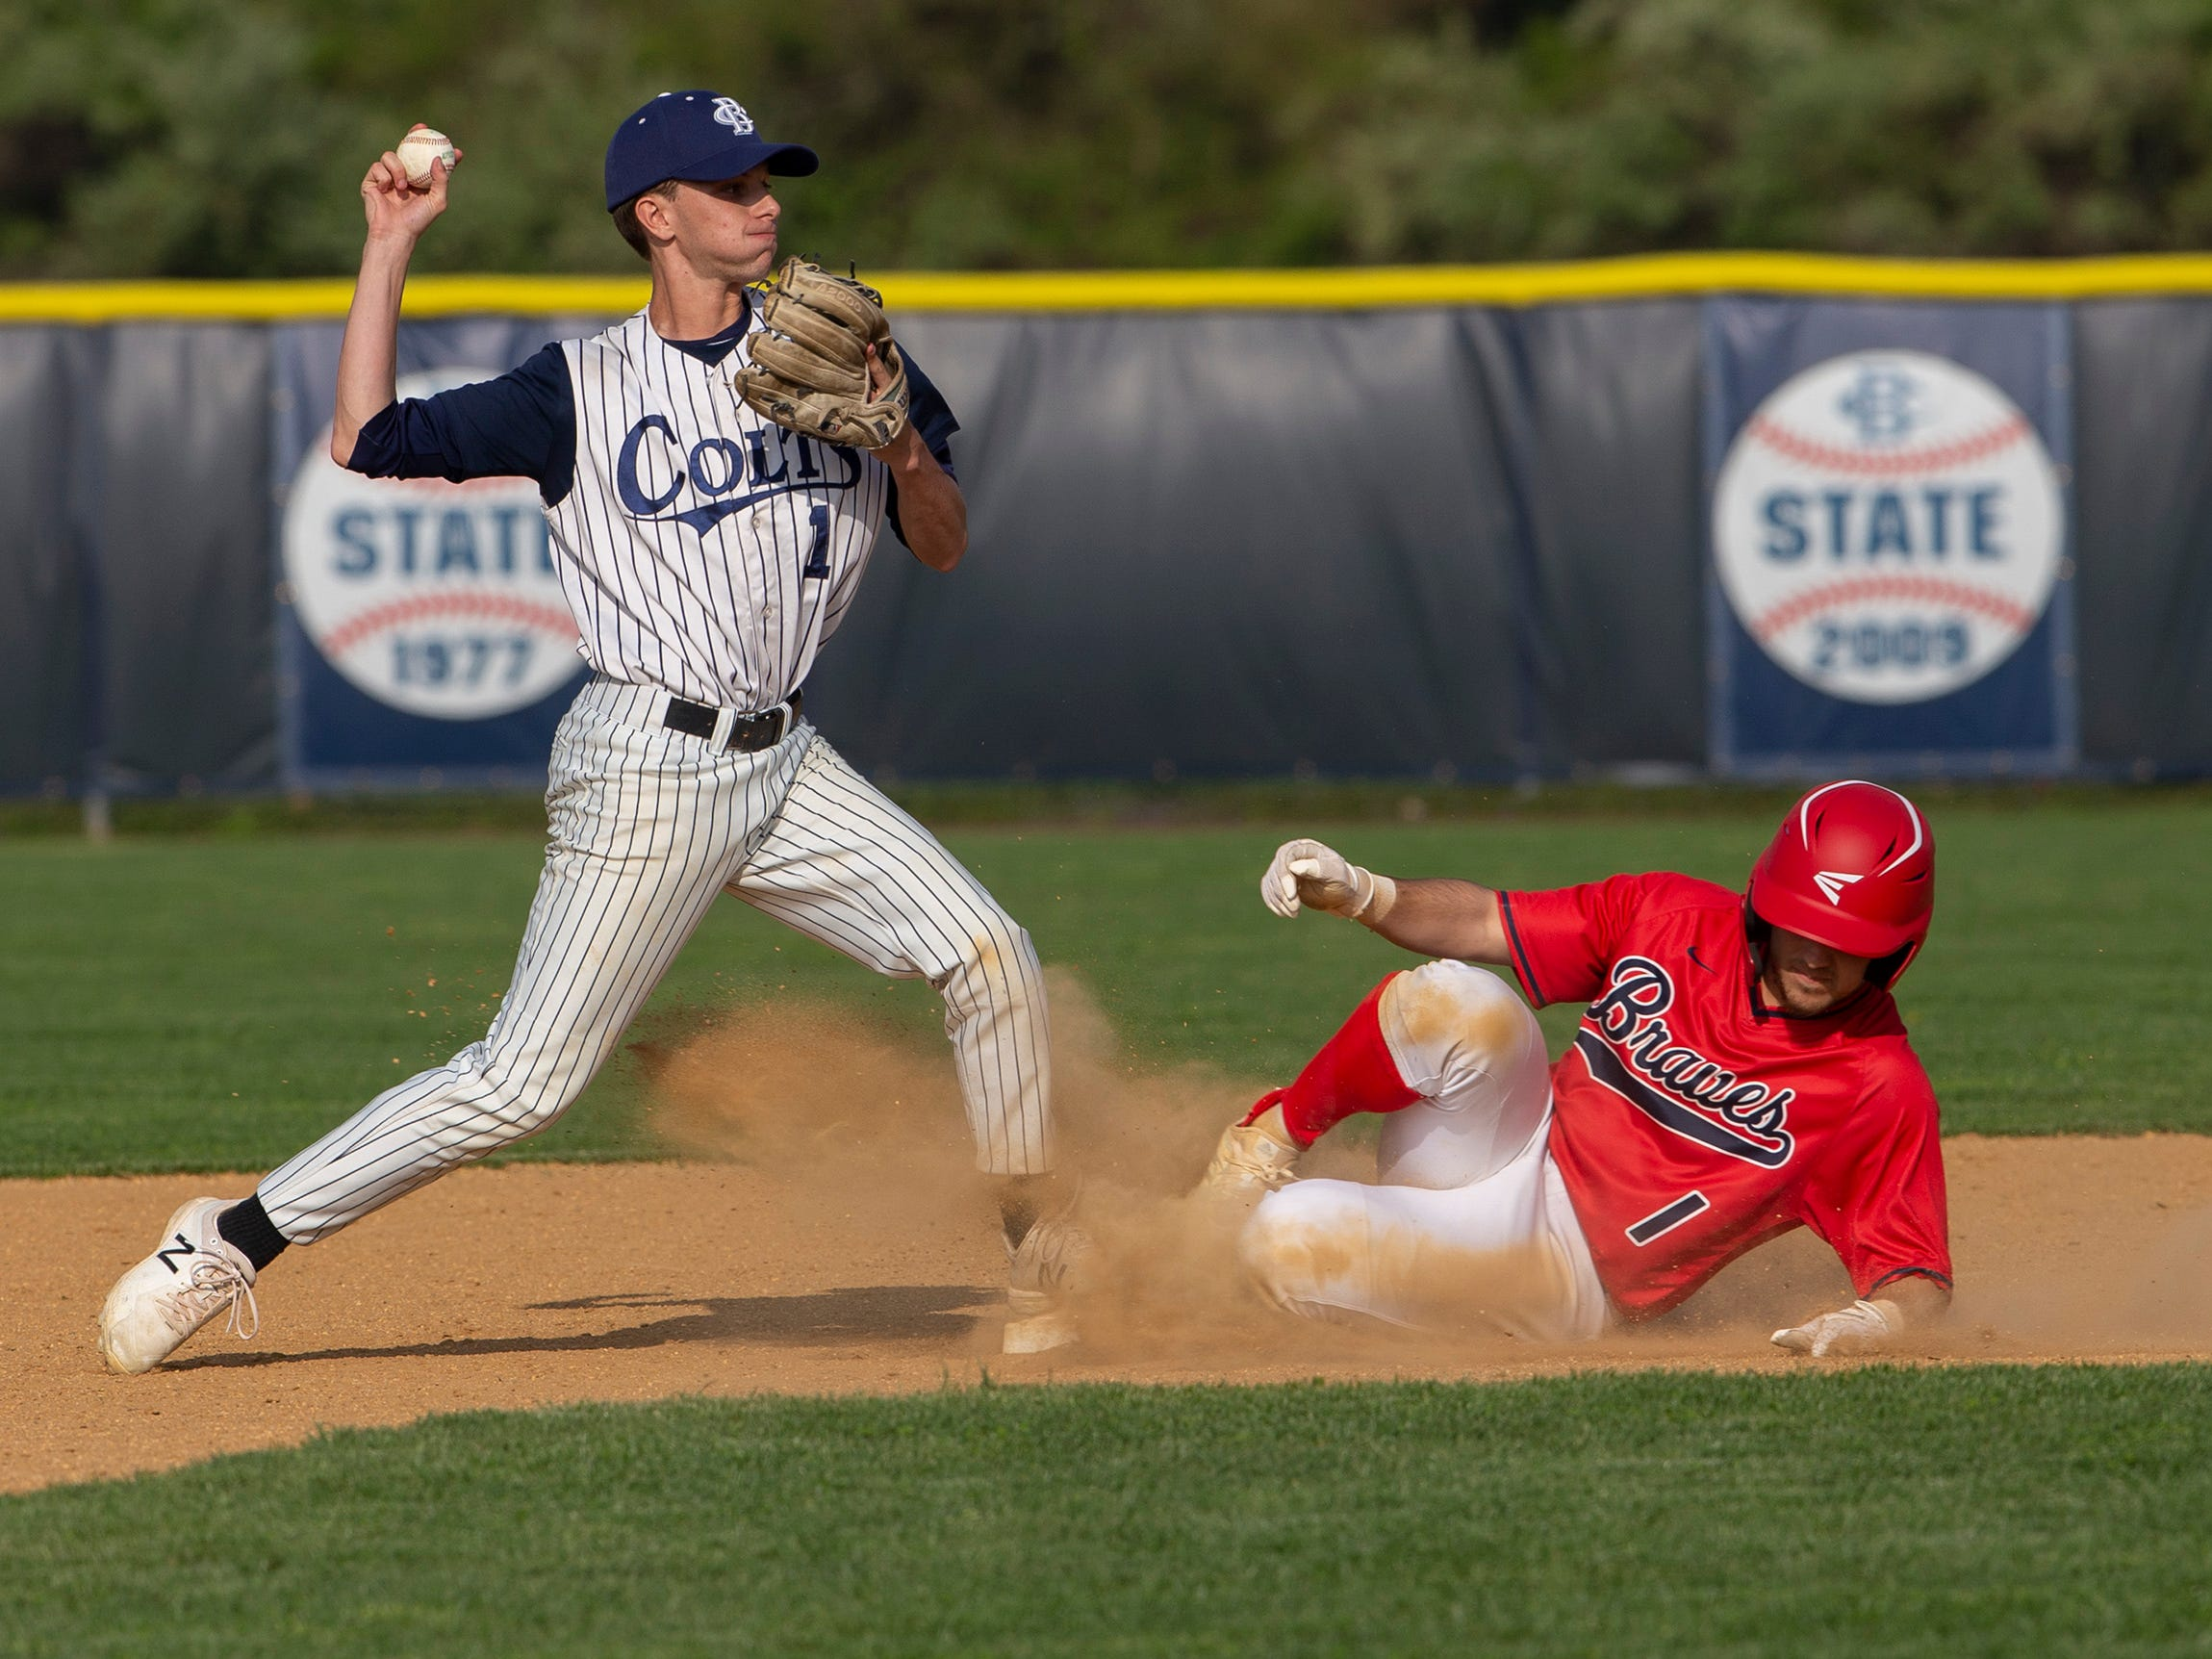 Mike Kuver of Manalapan breaks up a double play try by CBA Anthony Celestre in the sixth inning. Manalapan baseball vs Christian Brothers Academy in Middletown NJ. On May 2, 2019.